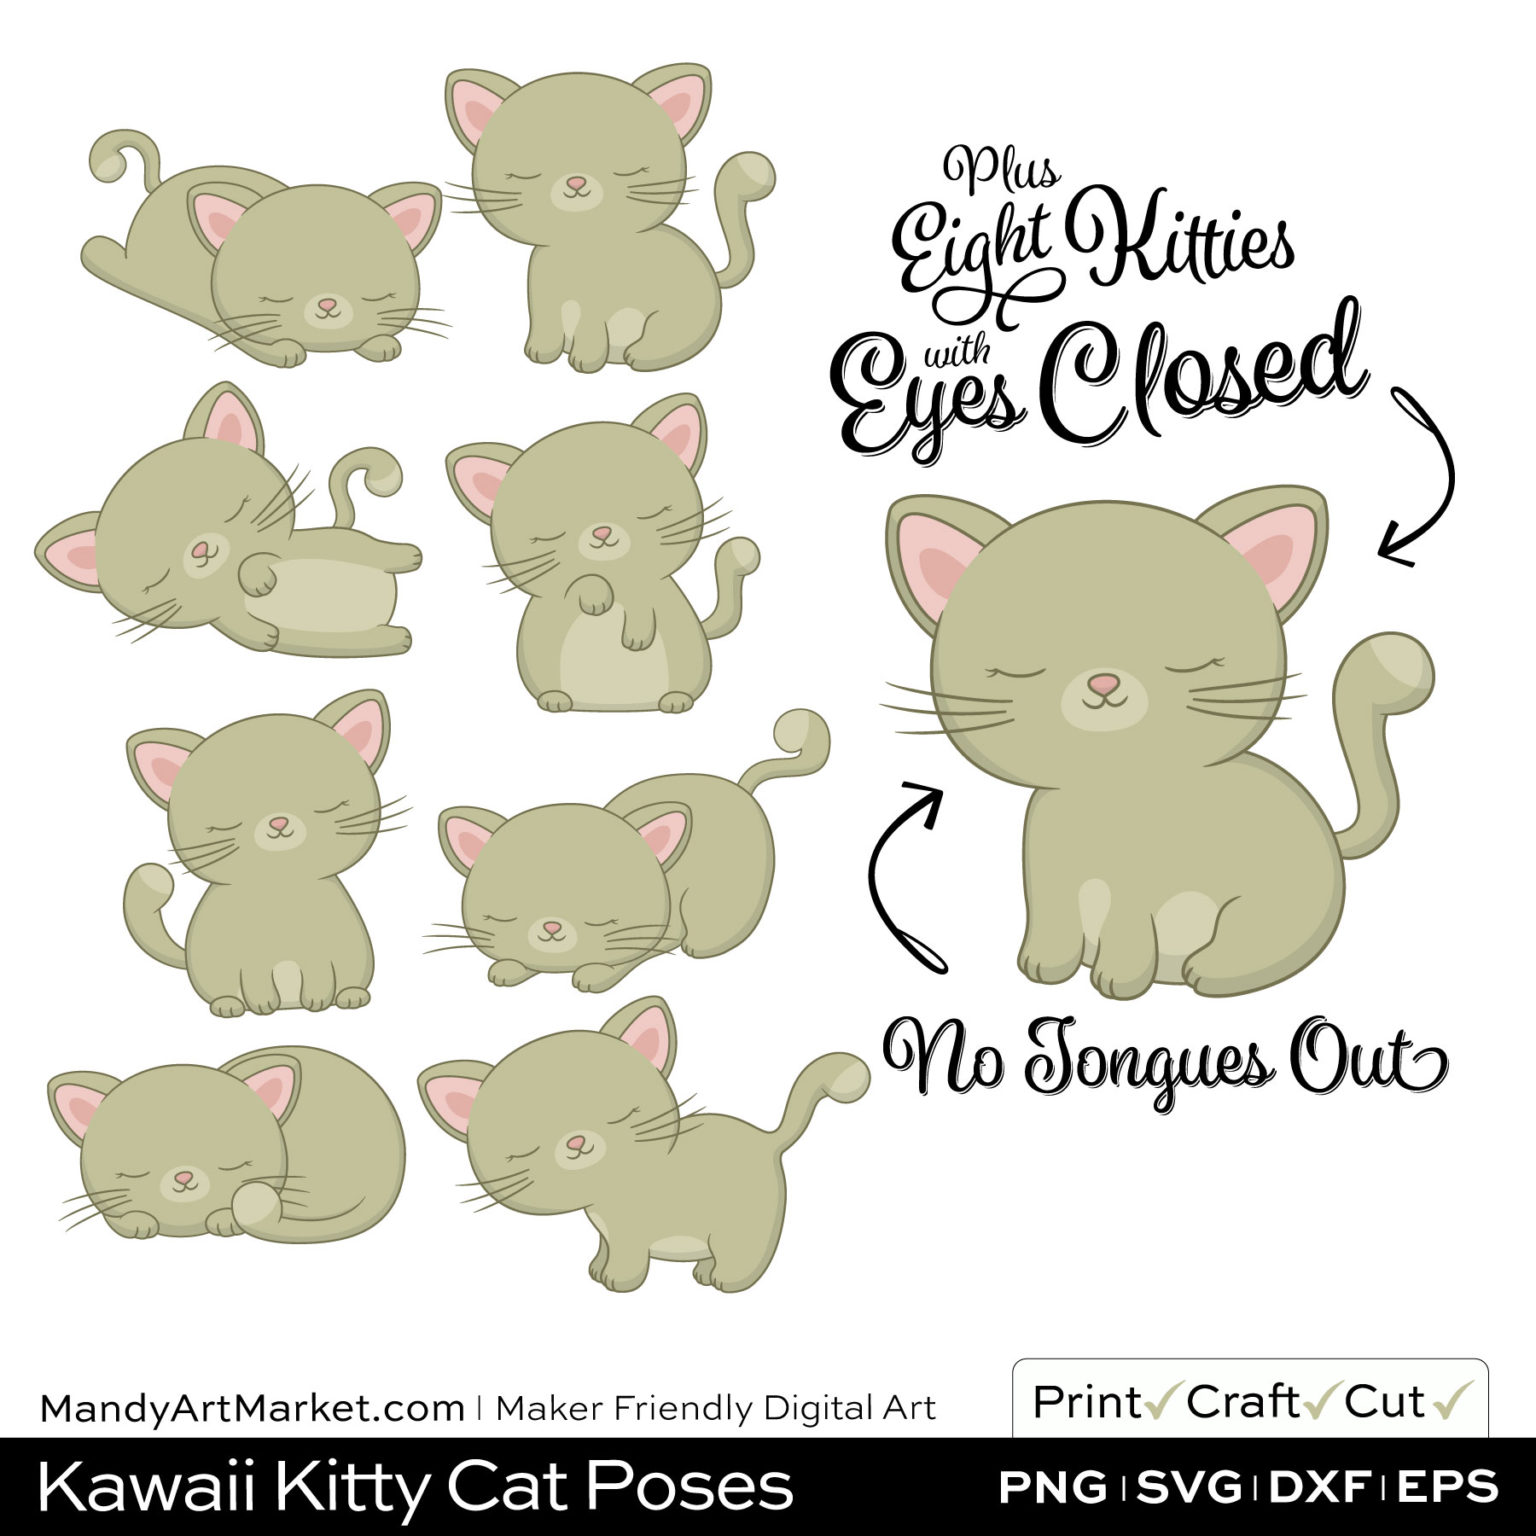 Khaki Green Kawaii Kitty Cat Poses Clipart PNGs Included in Download